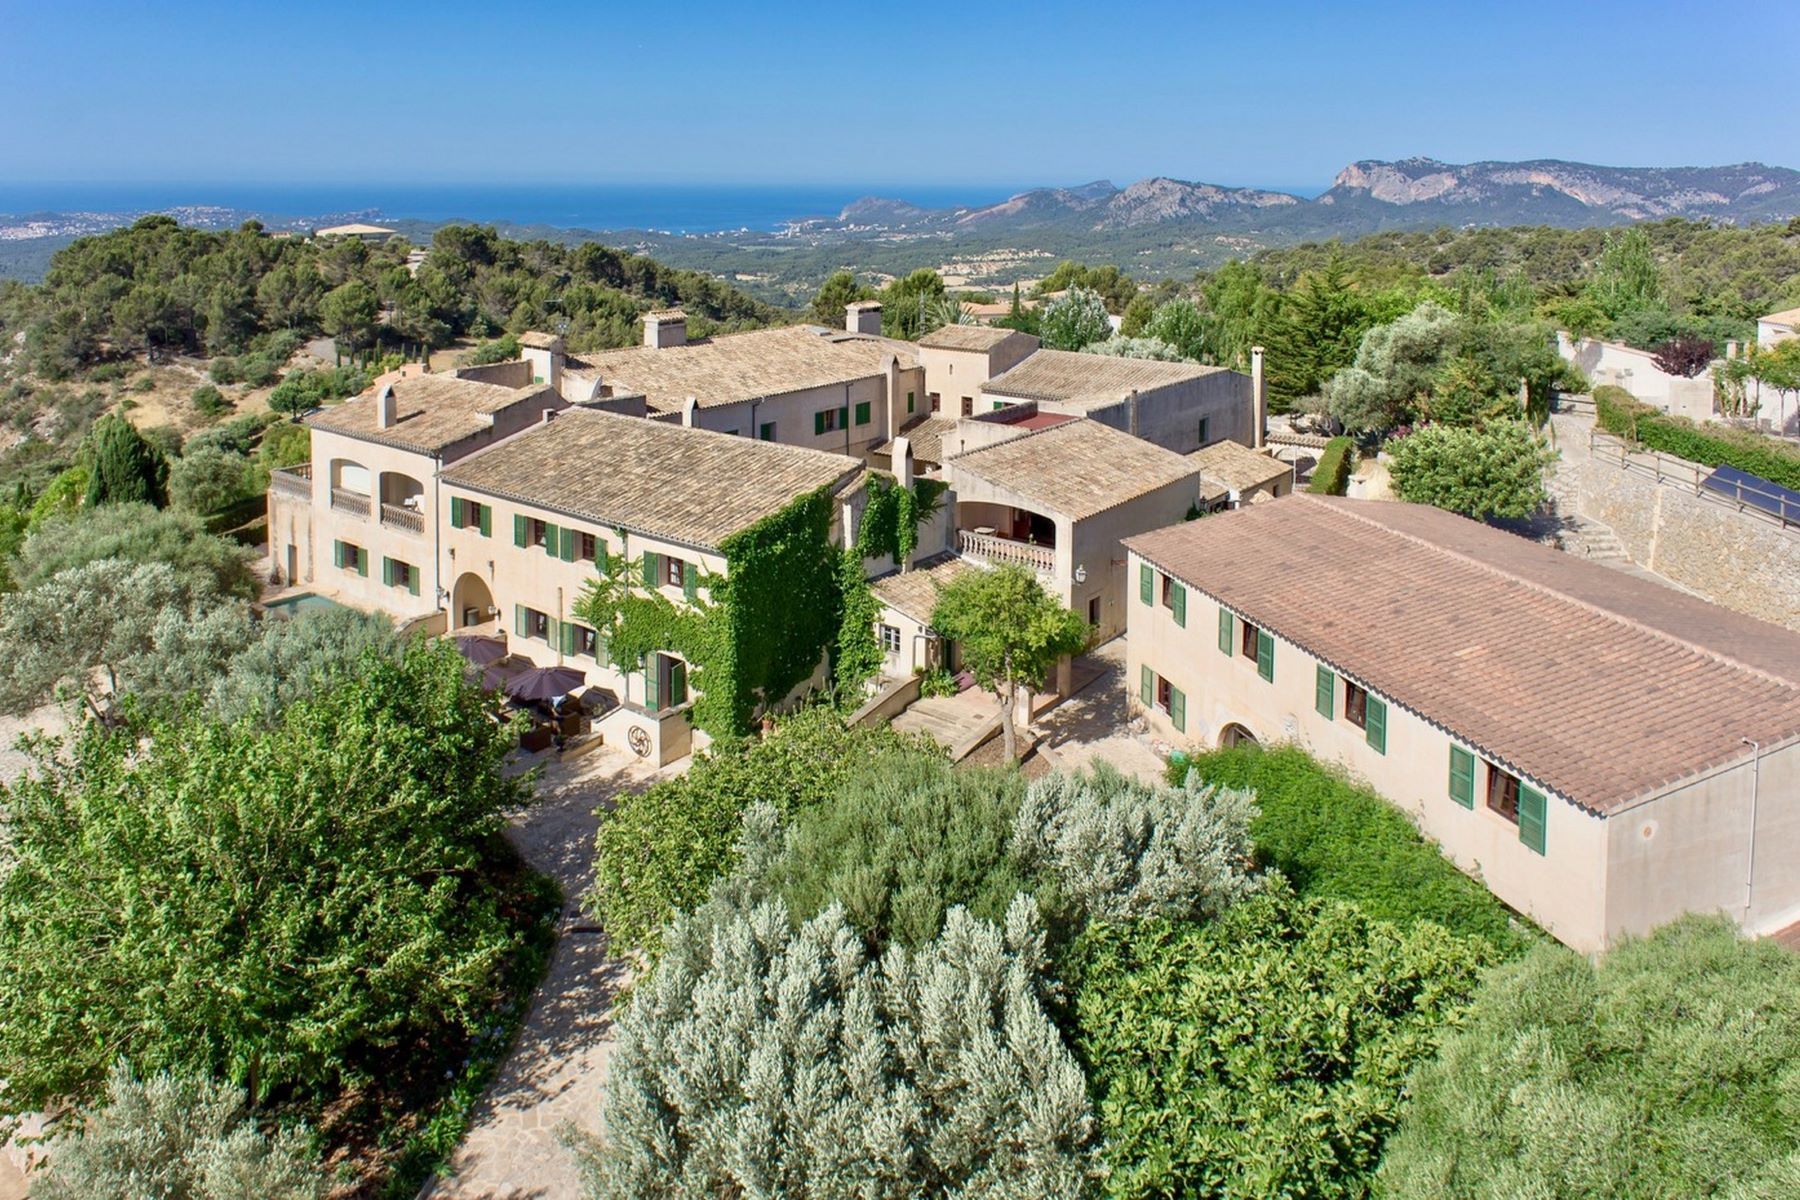 Single Family Homes for Sale at Magnificent property in Calviá with sea views Calvia, Balearic Islands Spain